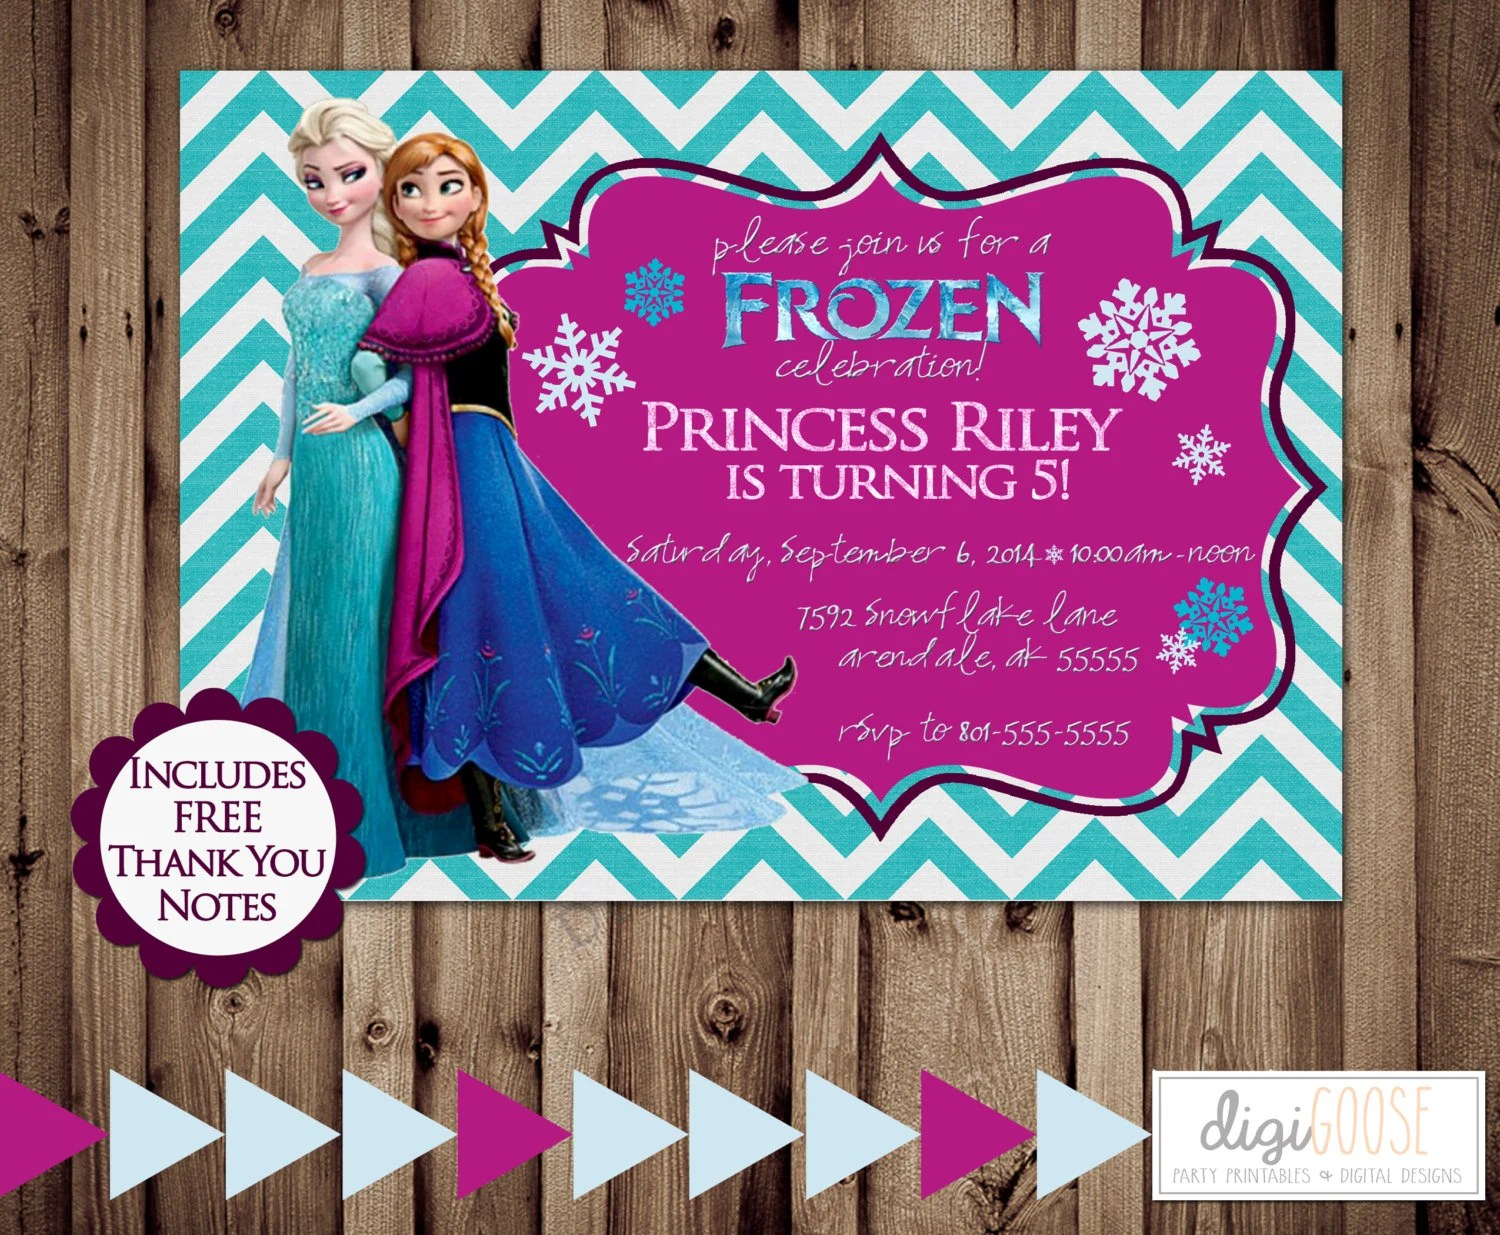 Printable FROZEN Personalized Birthday Party Favors Gift Tagsfrozen